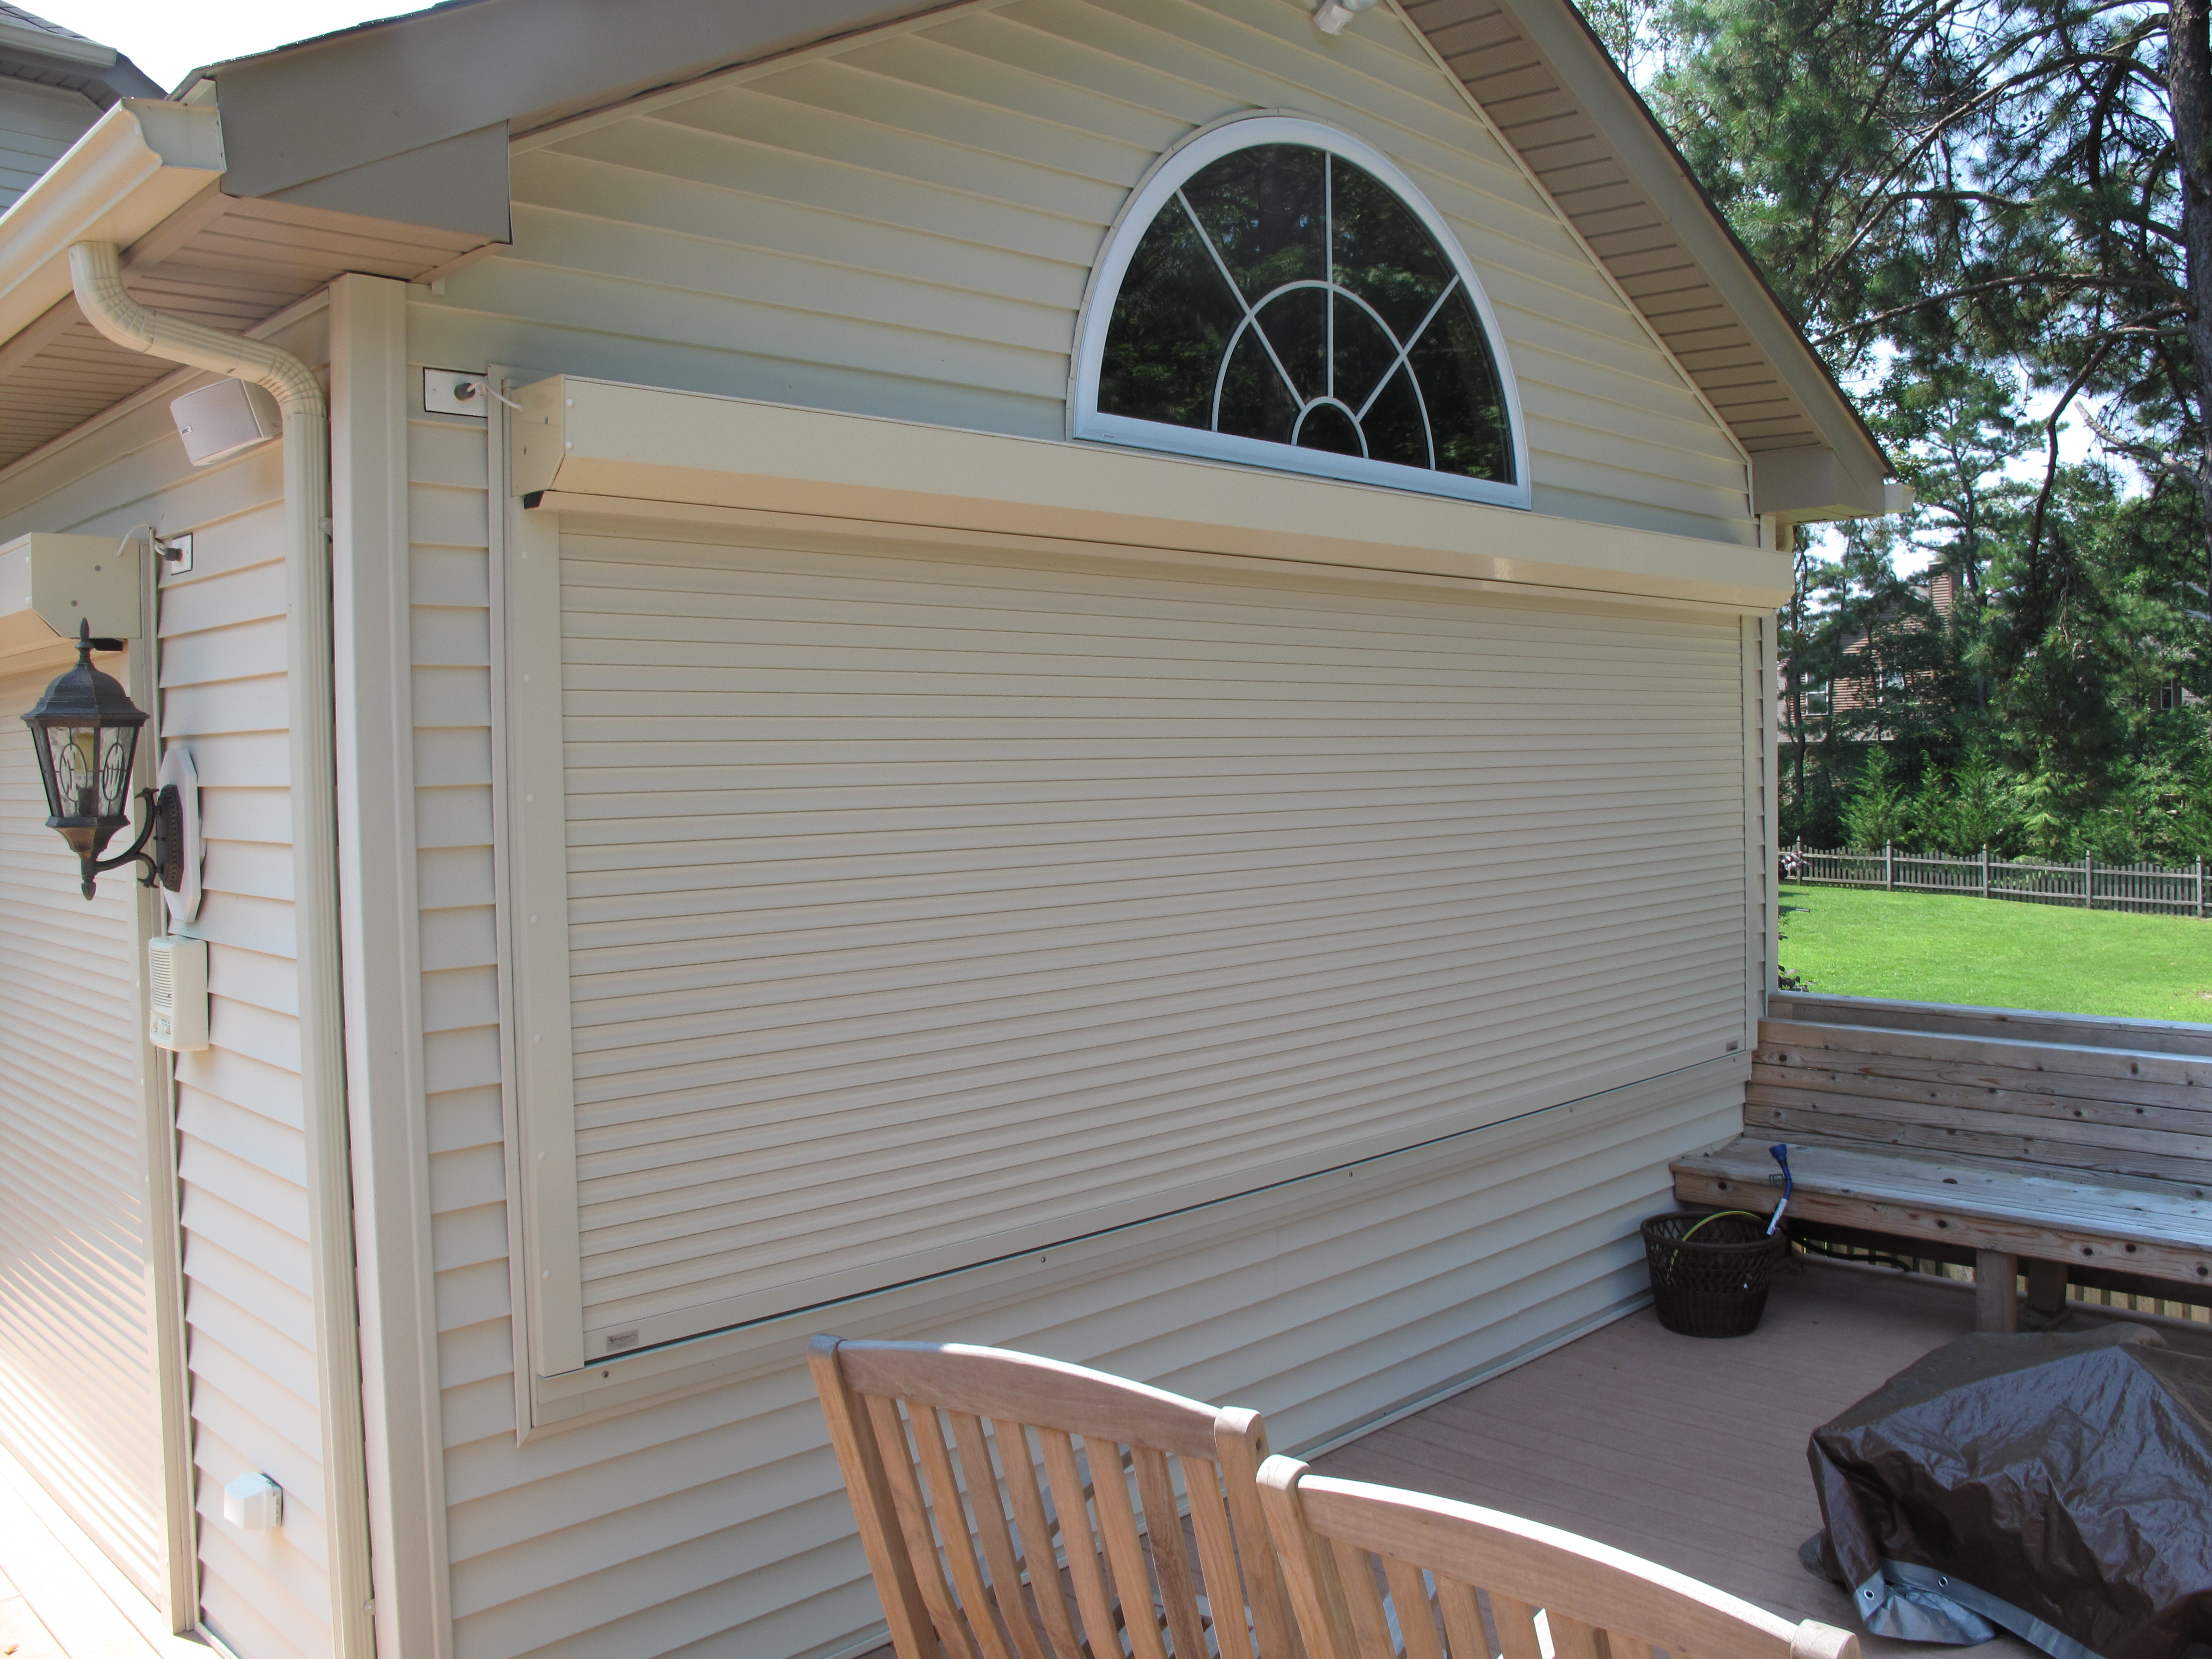 Storm/Hurricane/Security Shutters